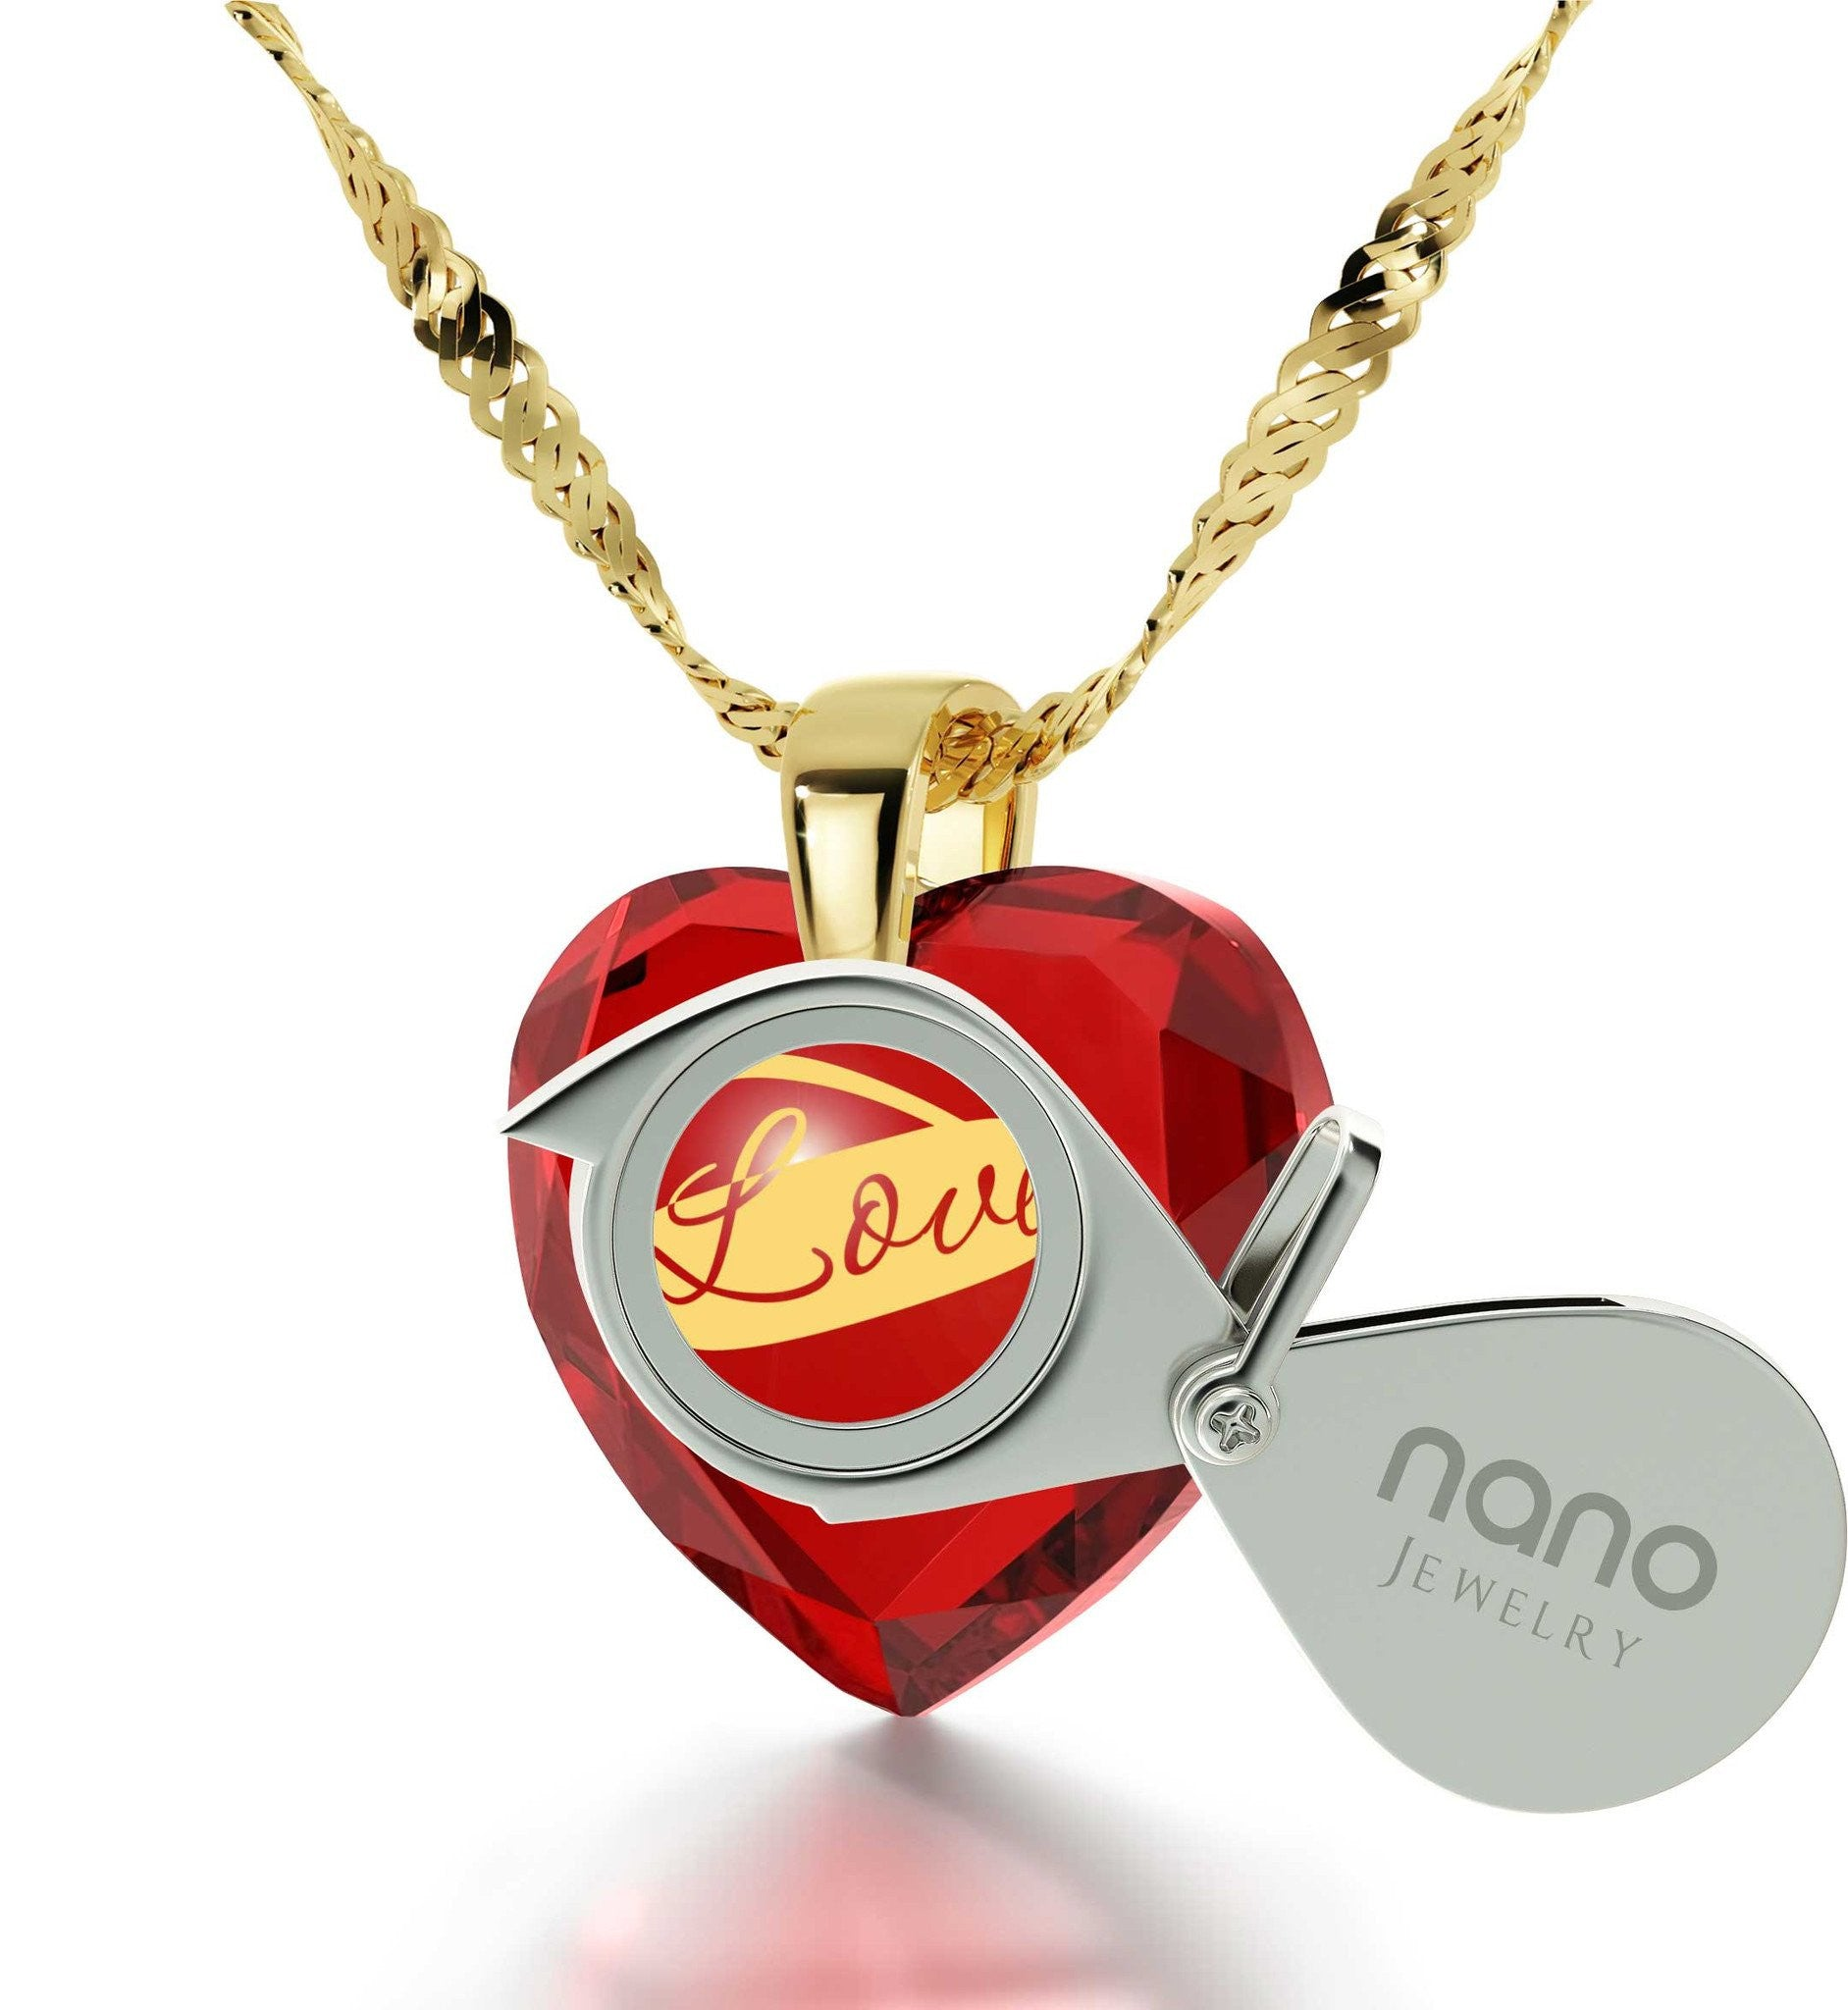 "Best Valentine Gift for Girlfriend, ""I Love You Infinity"" Imprint, Gold Filled Necklace, Pure Romance Products, by Nano Jewelry"